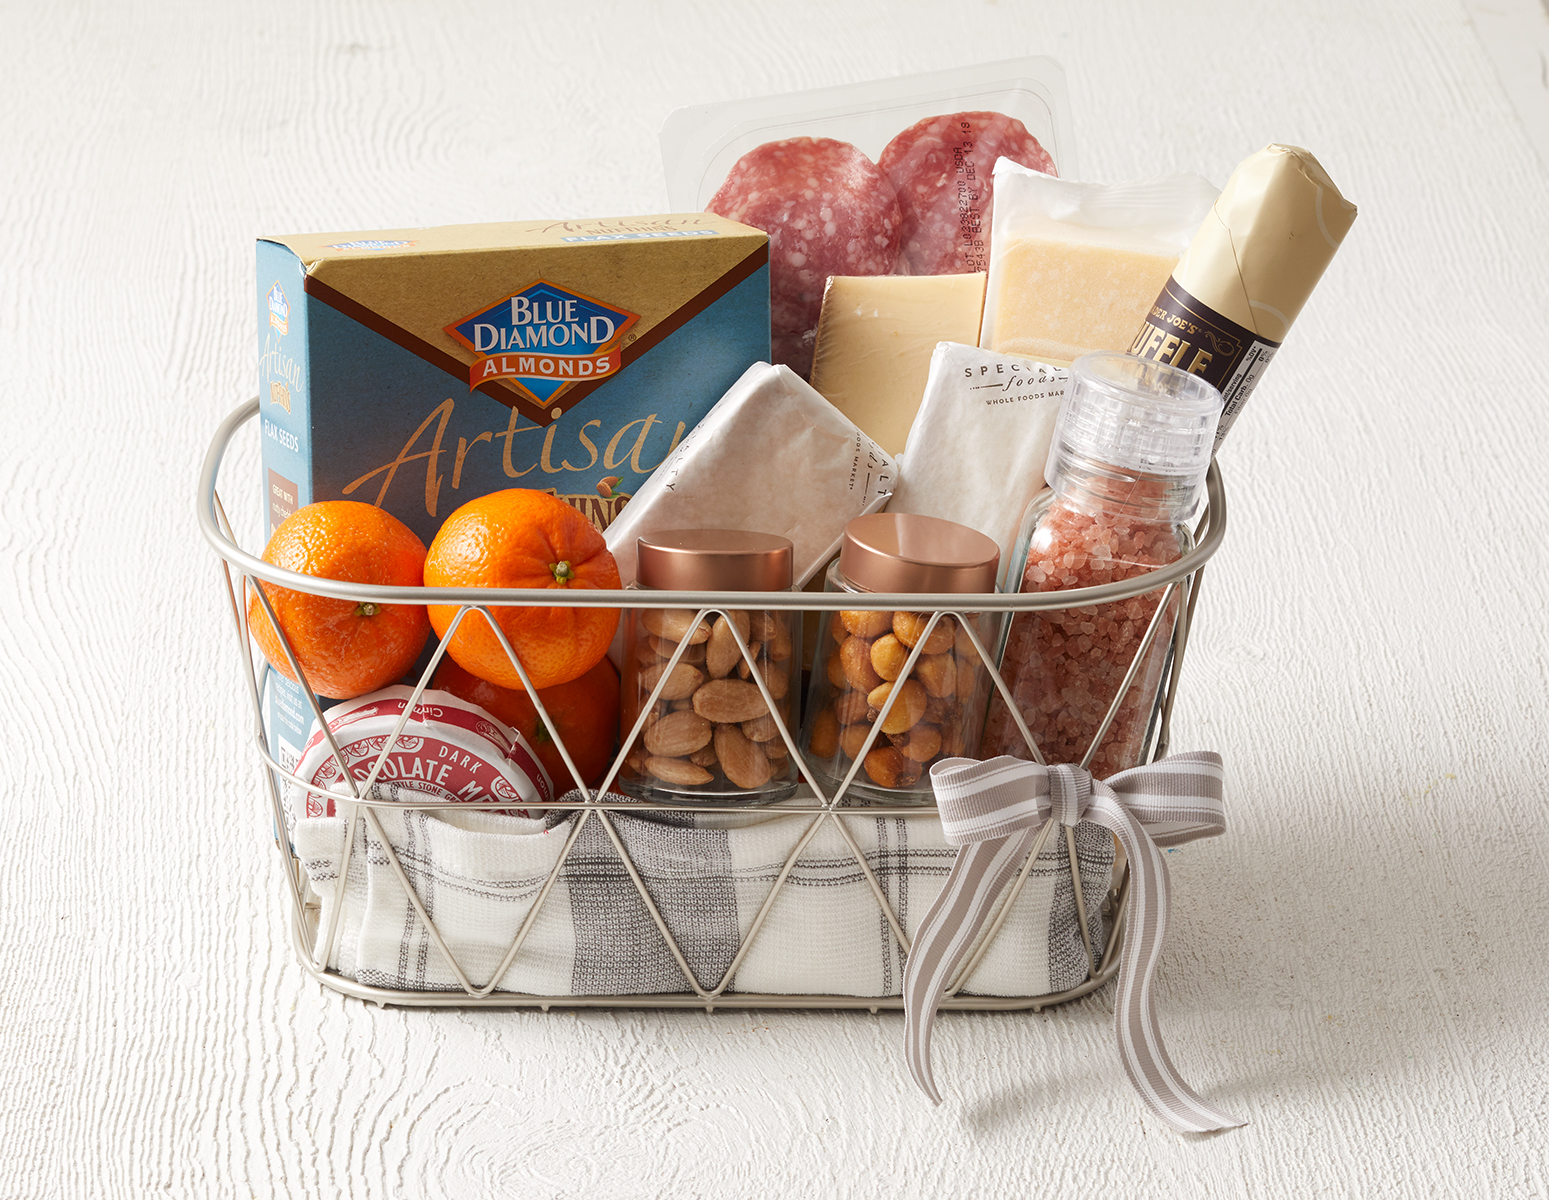 Hostess gift for foodies including a metal gift basket with tea towel, salt, almonds in canisters, boxed crackers, cheese, charcuterie, and clementines.